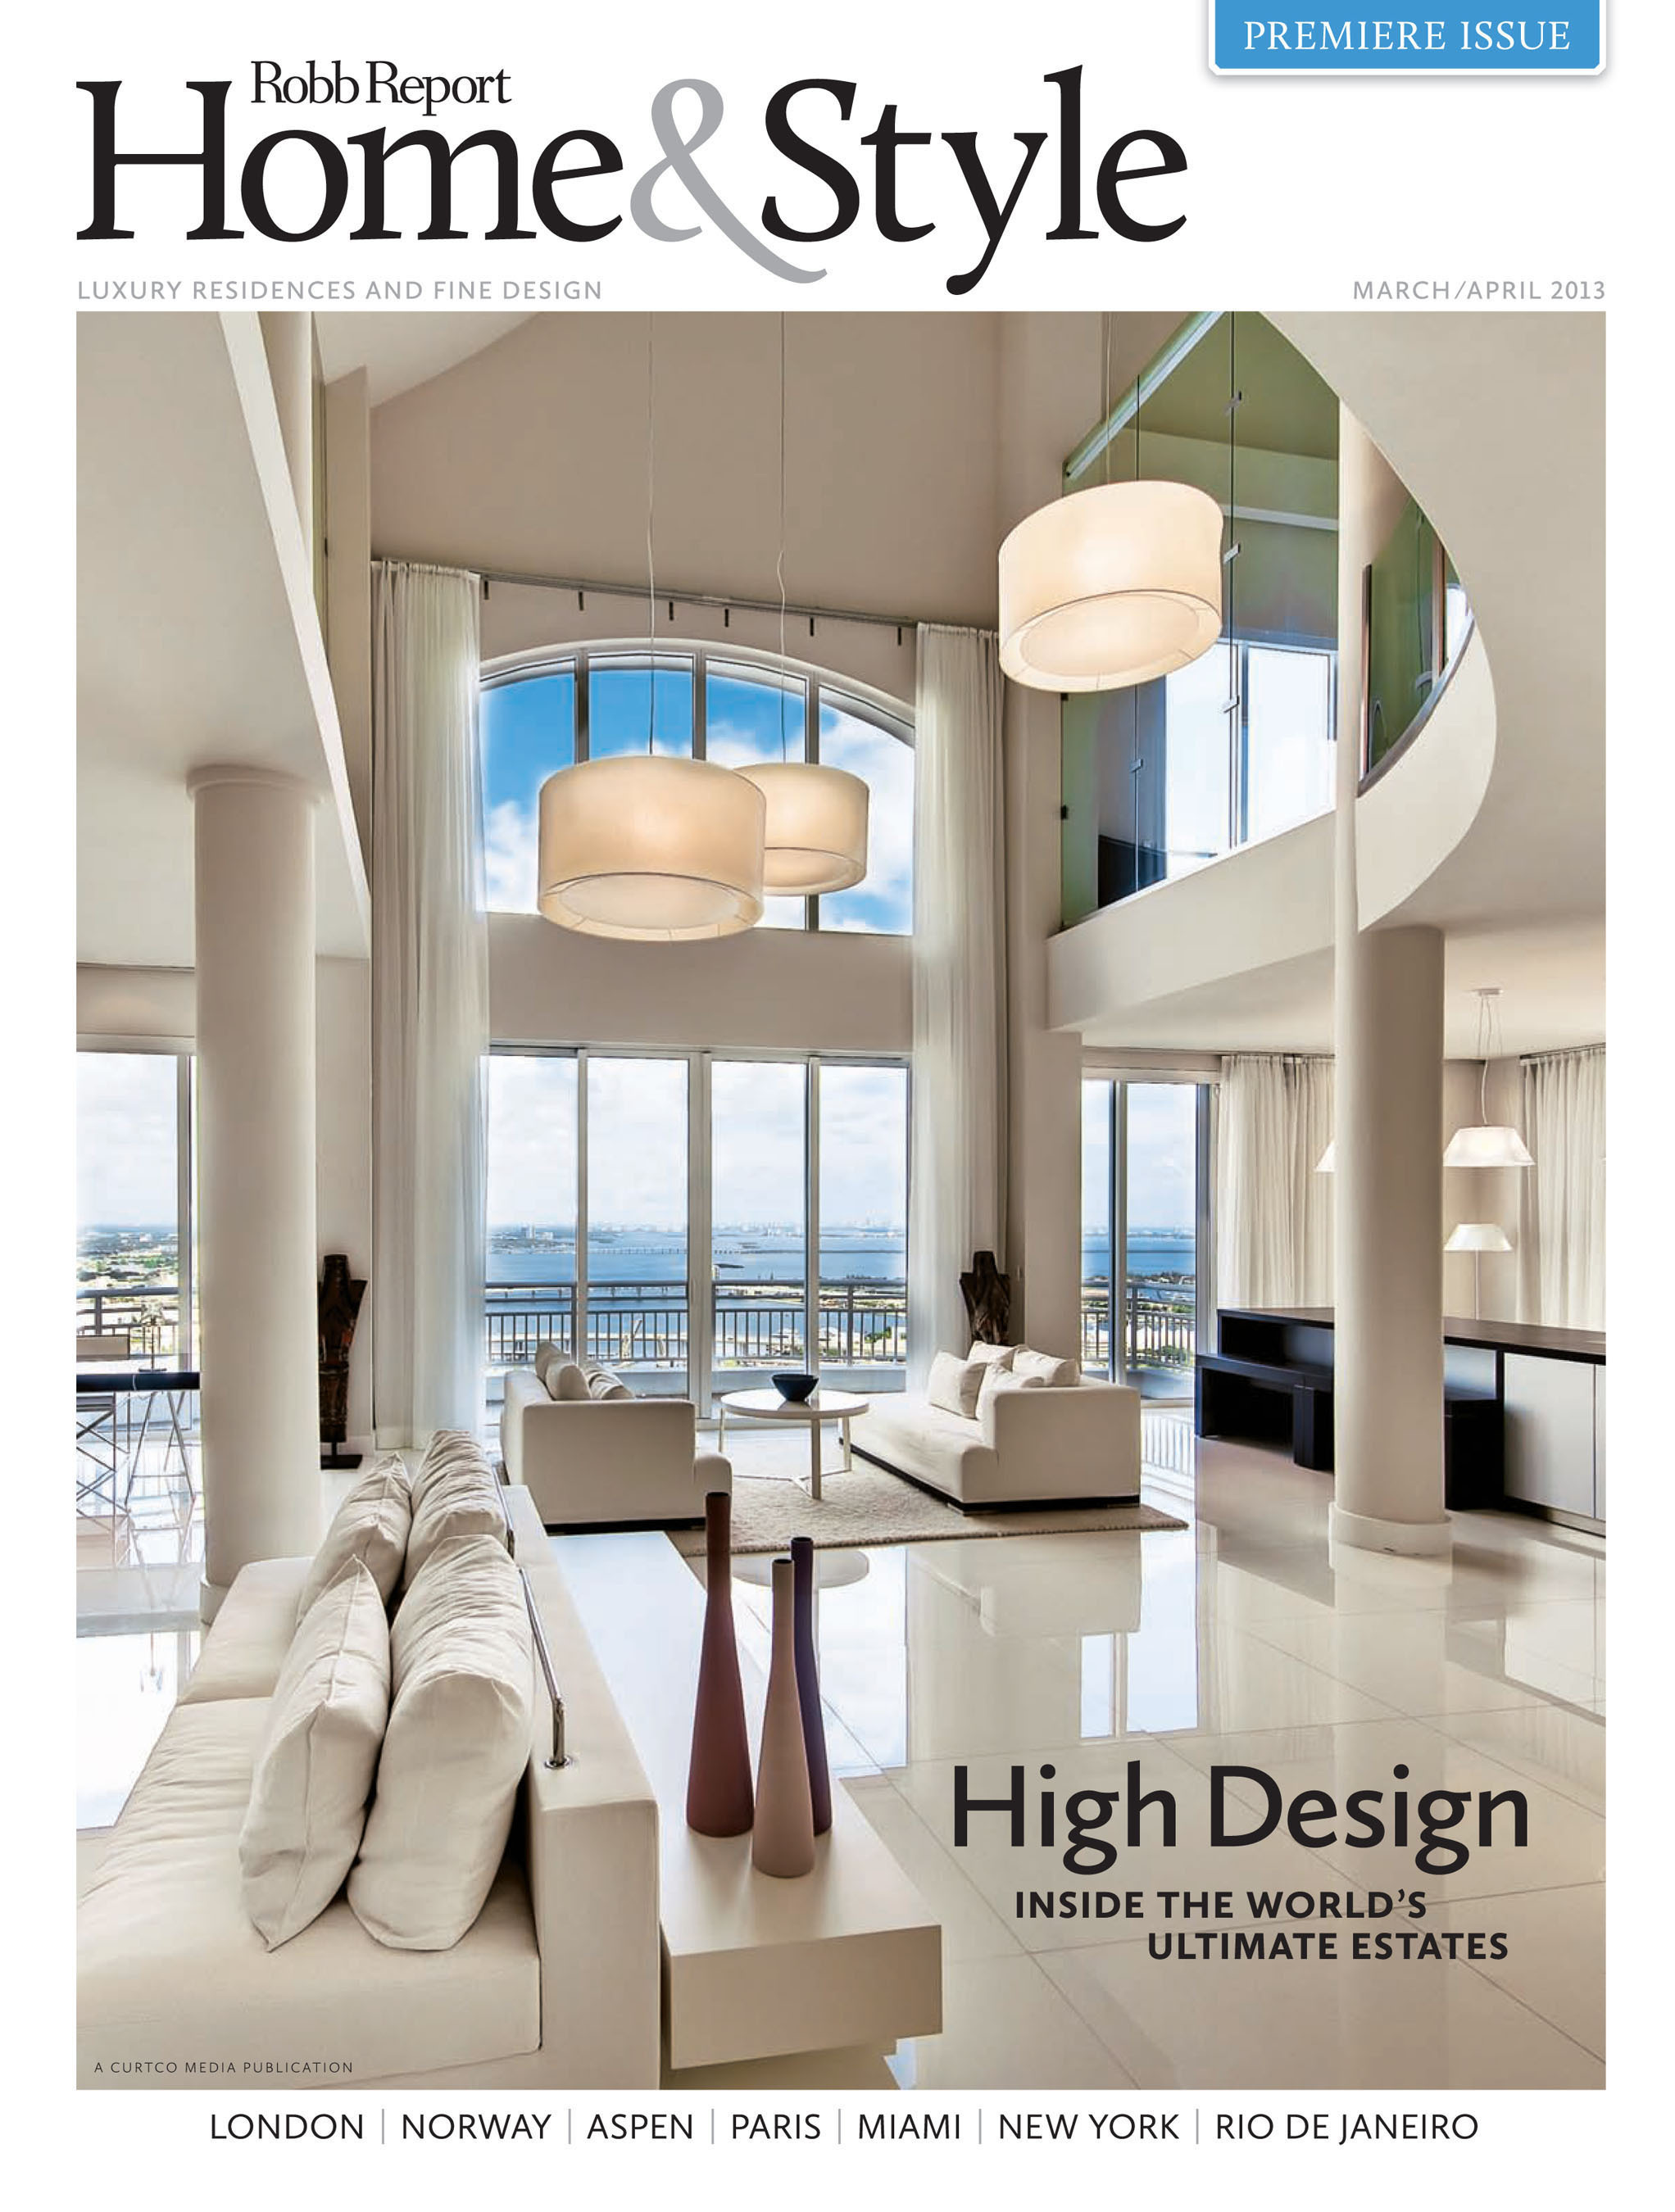 Robb Report Introduces Home Style Magazine Www Fashion Lifestyle